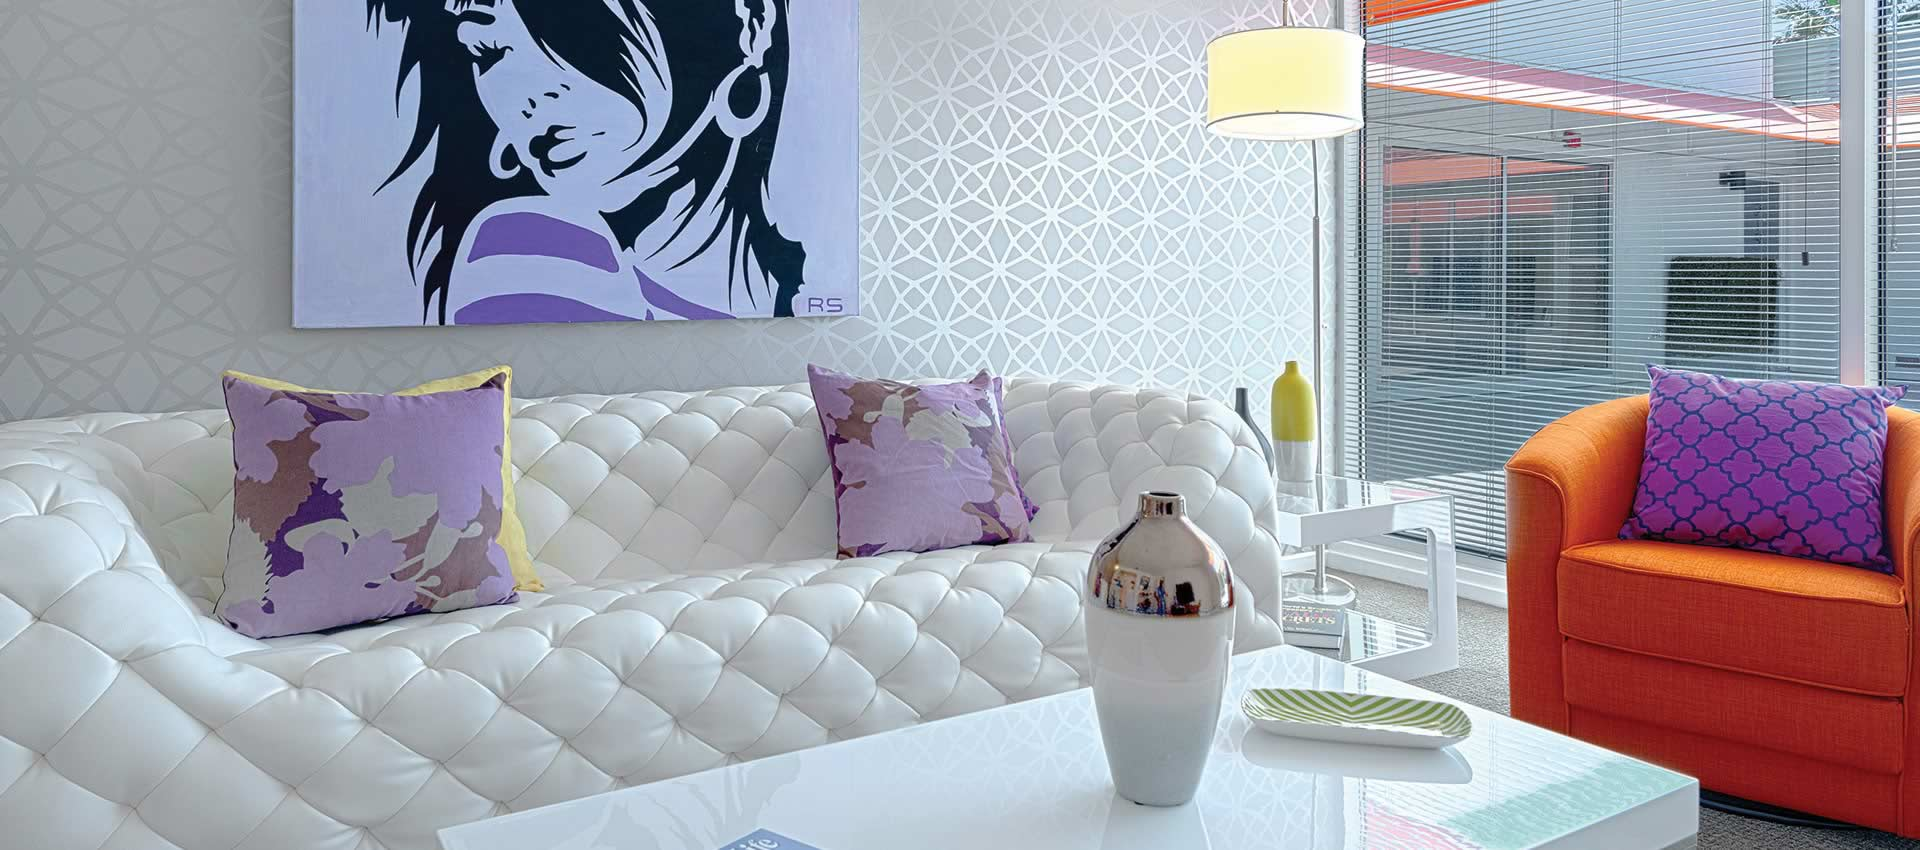 beautiful white couch and table in a room with windows looking outside patio